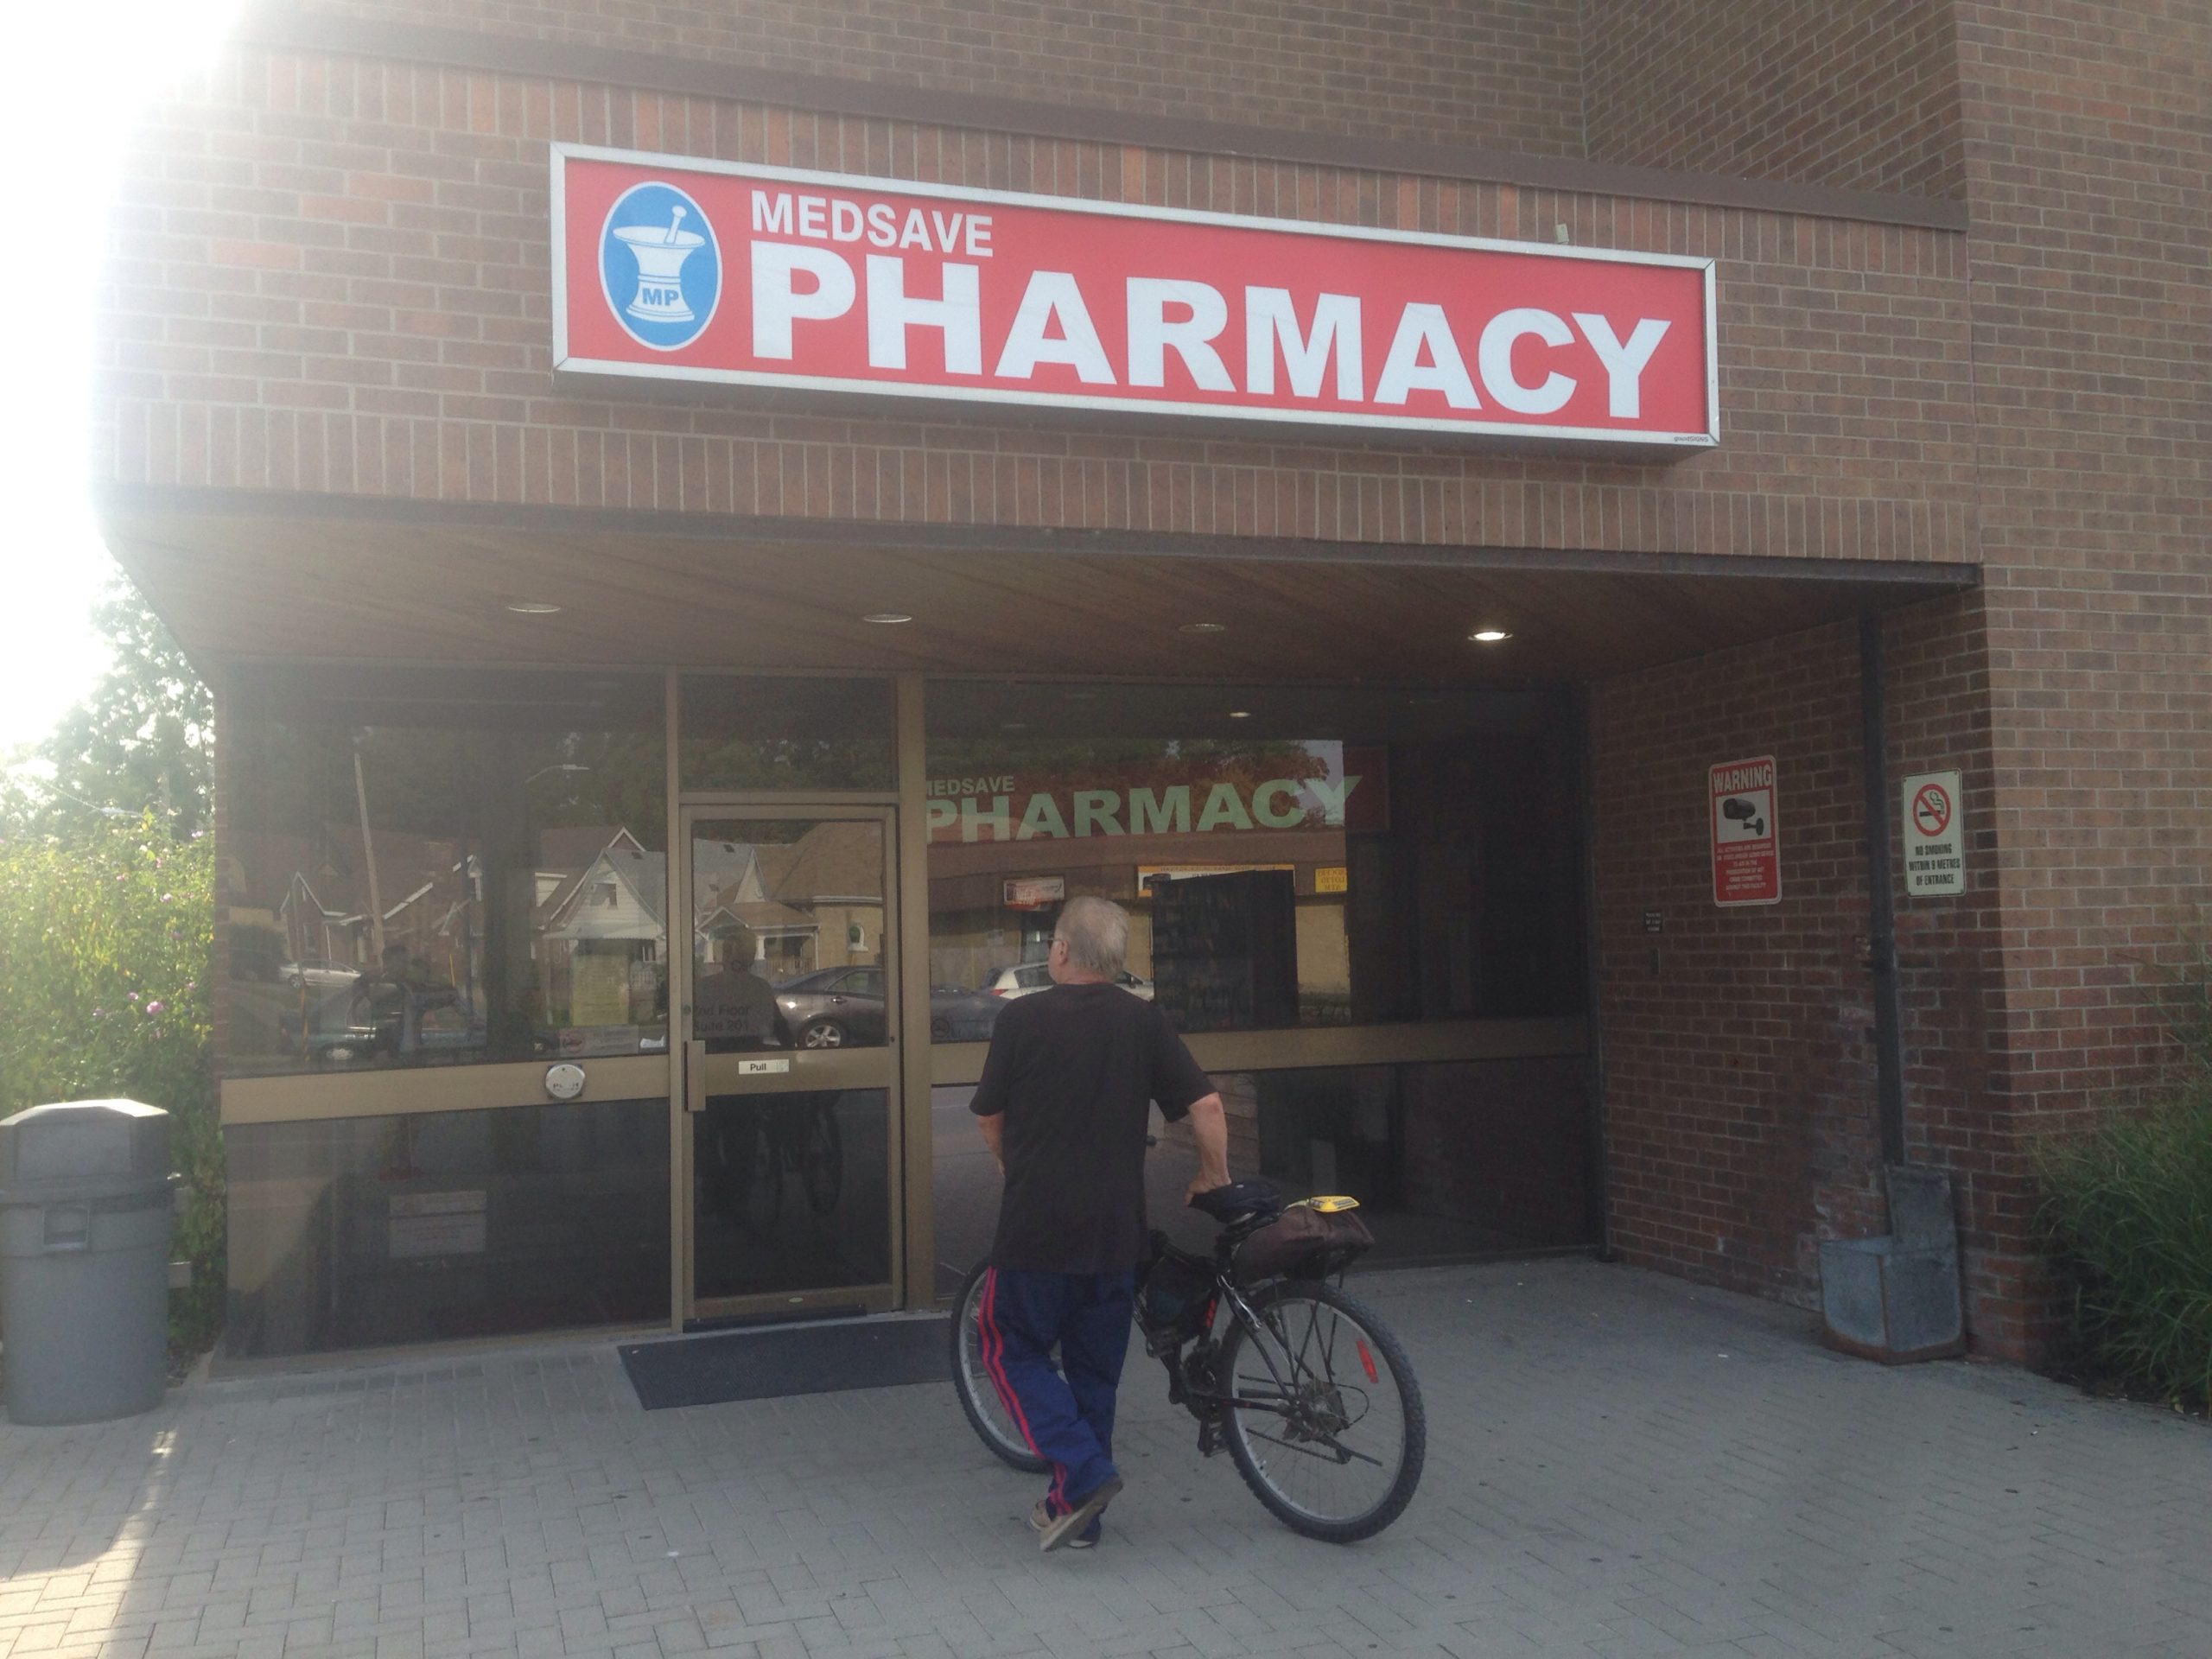 Medical Marijuana Clinic Confident About their Business in The Wake of Ontario's Pot Plan